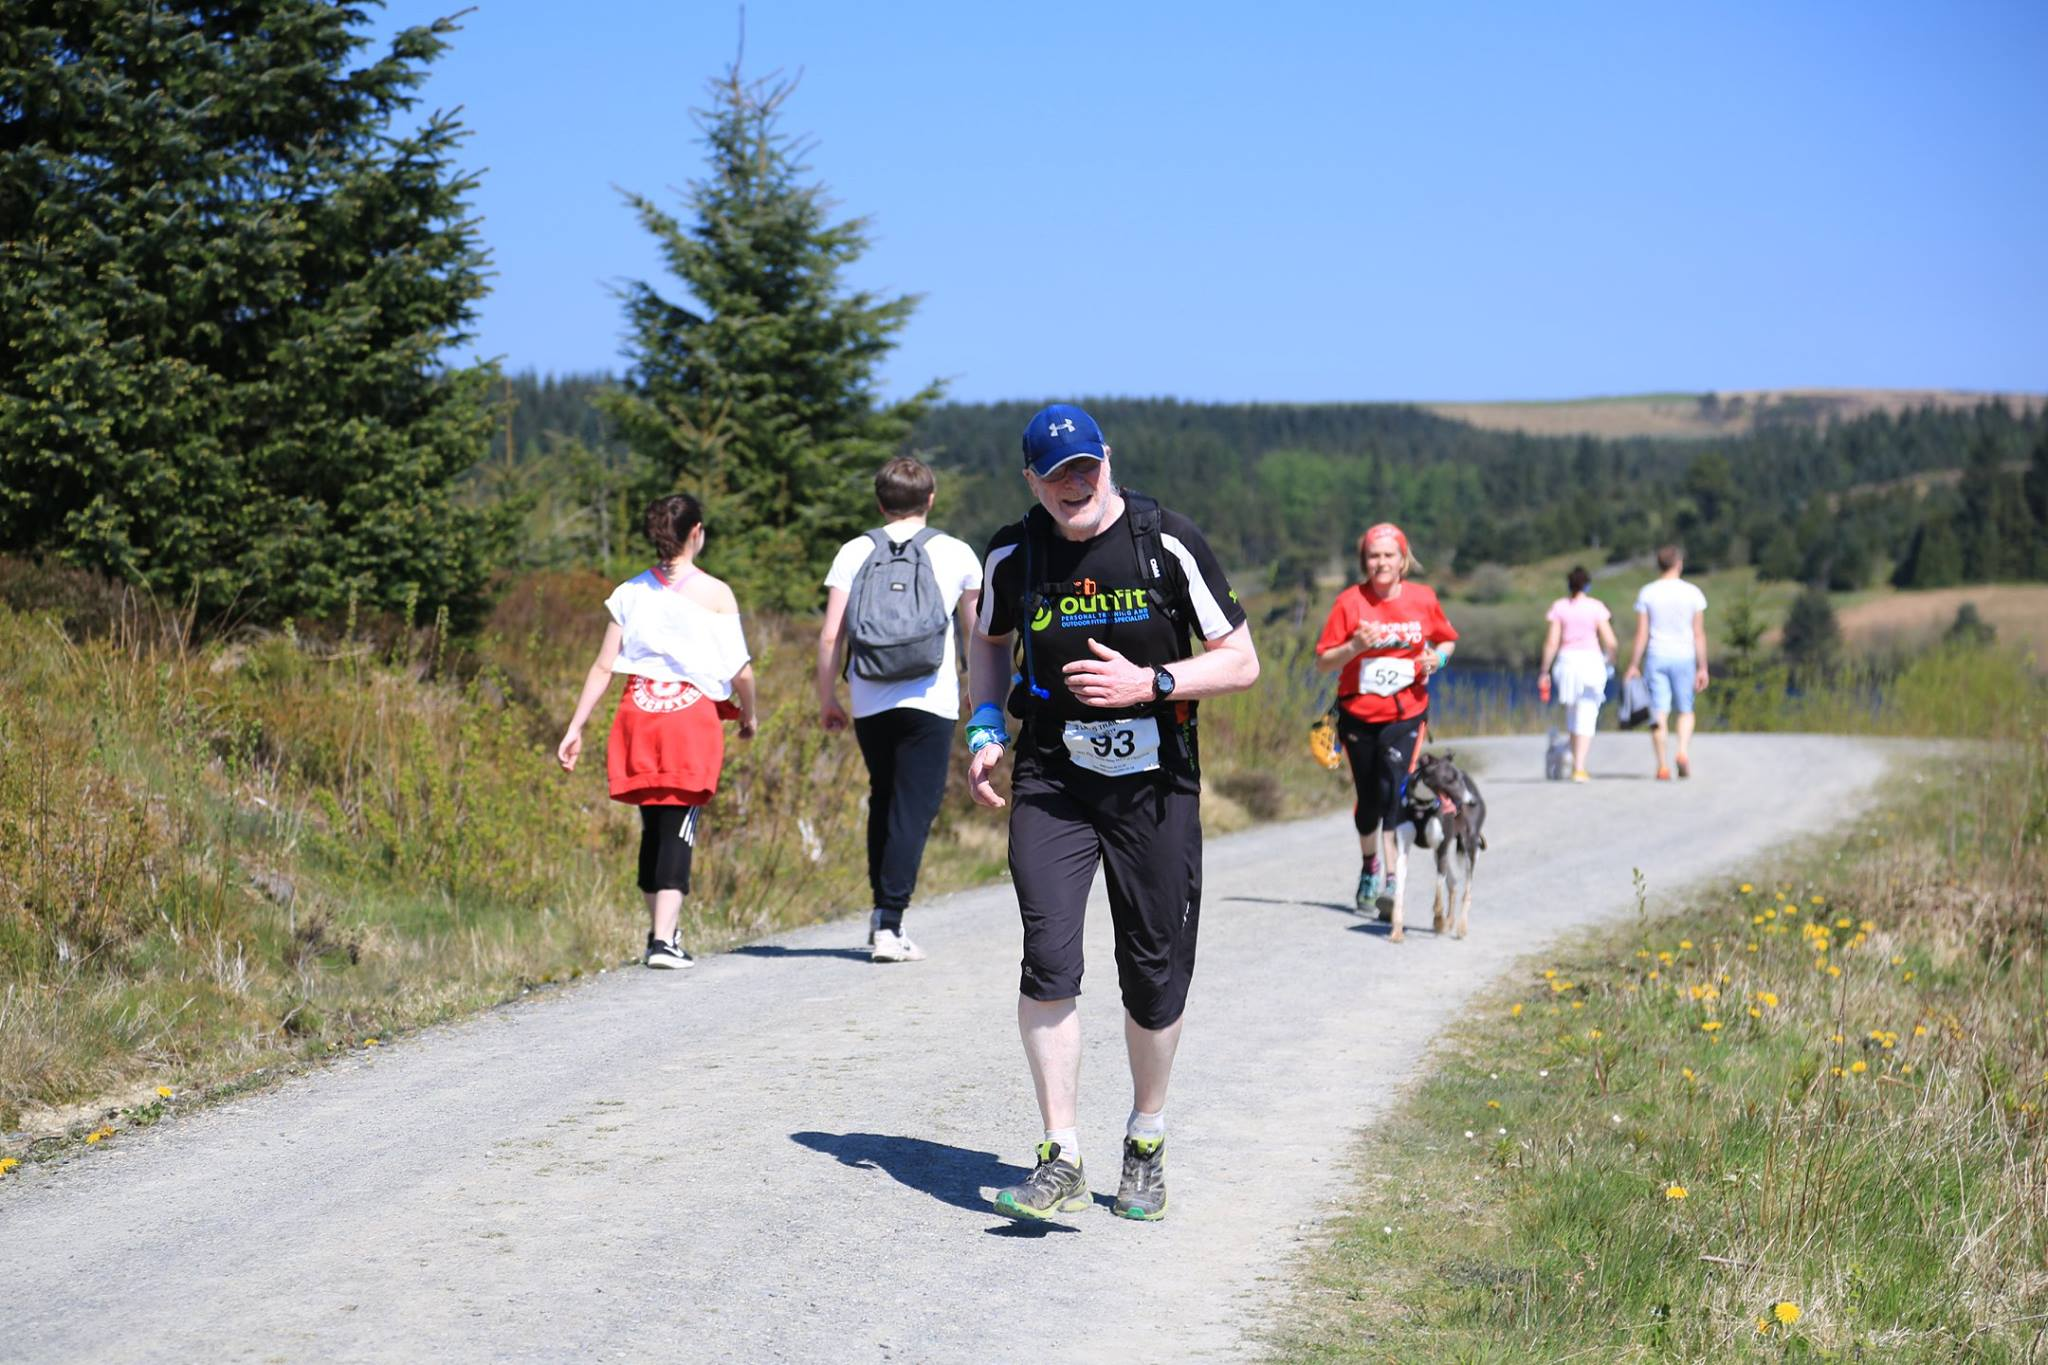 The 2 lakes Trail Races